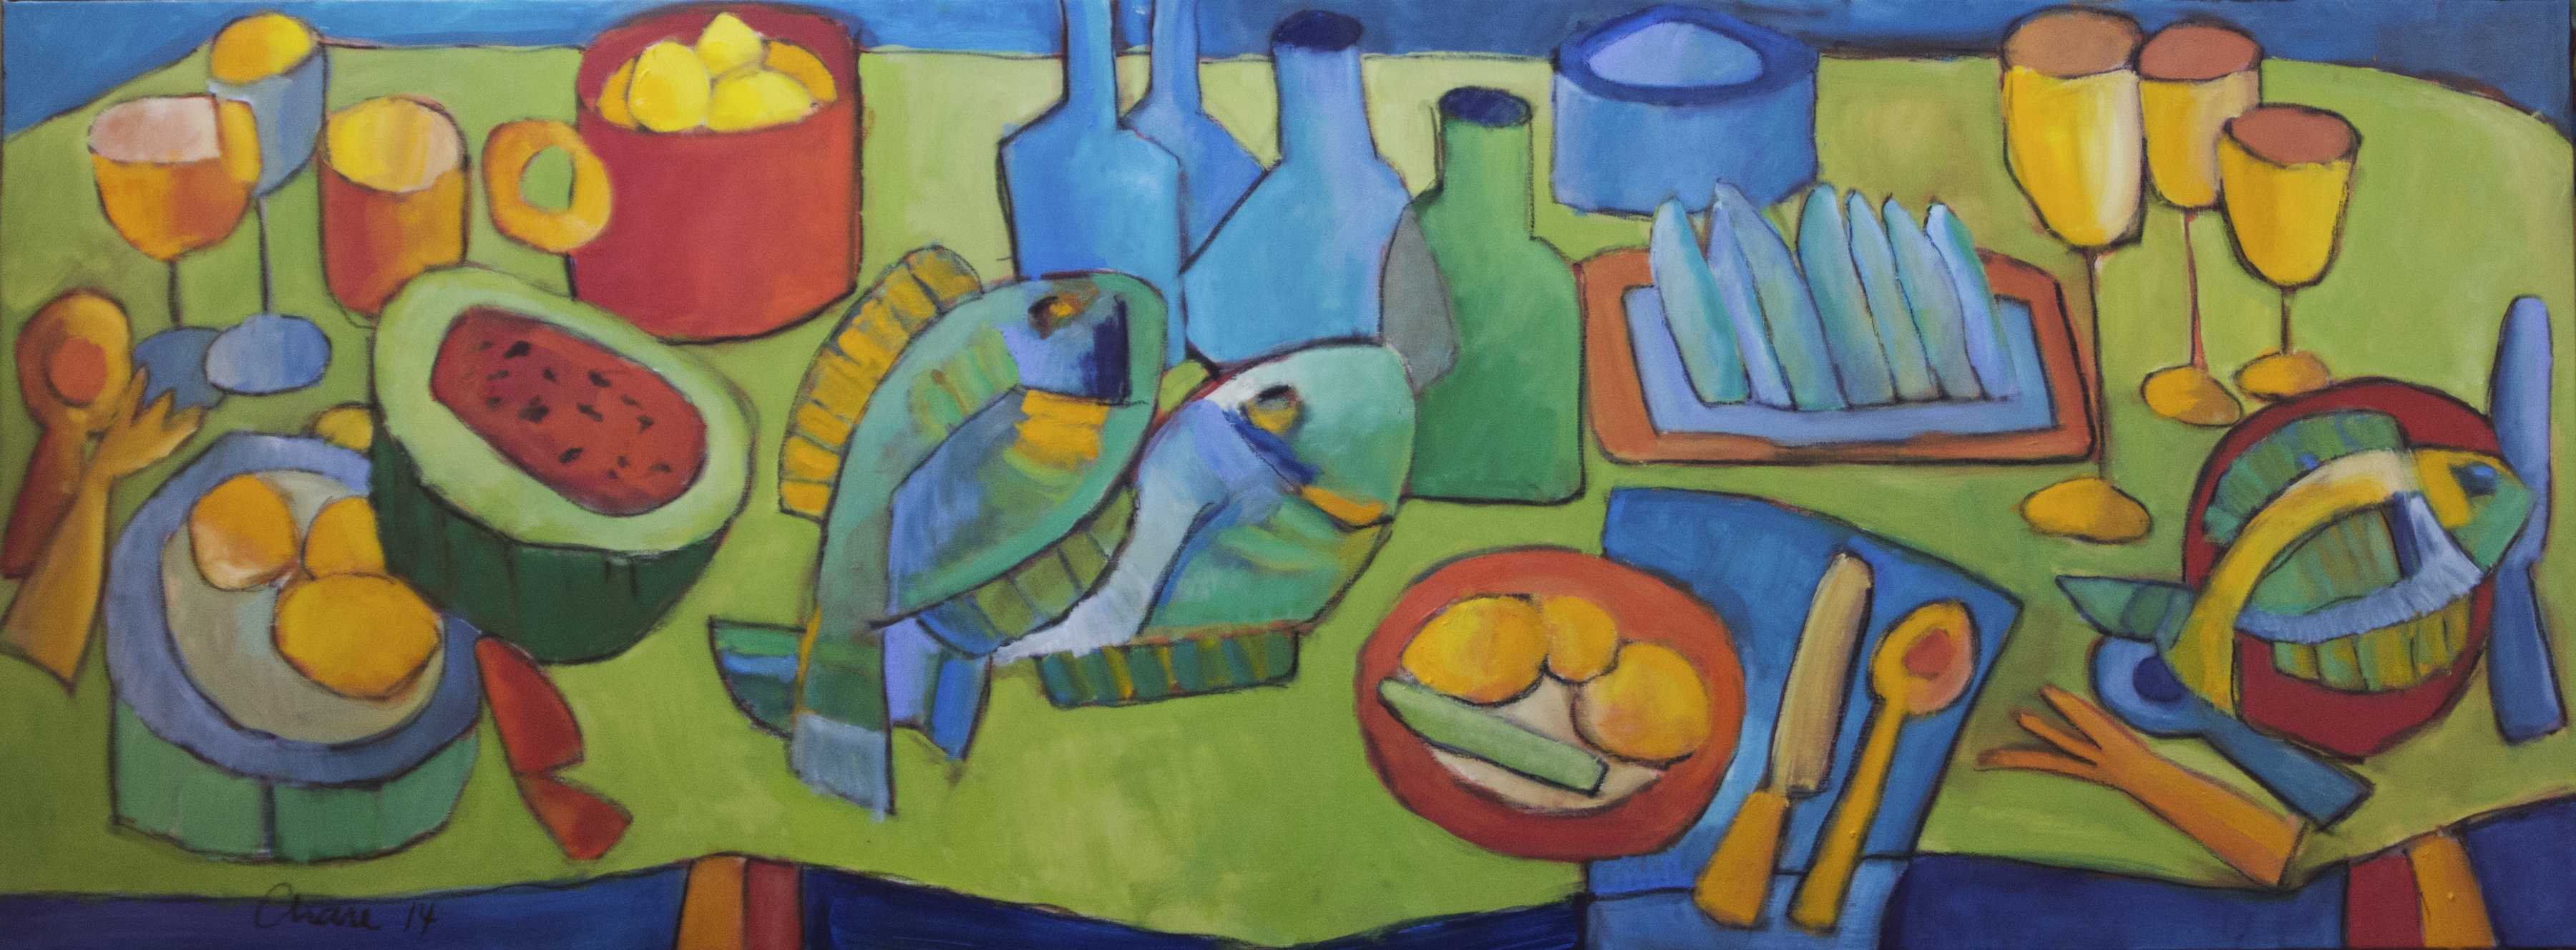 Banquet Summer with Fish artwork by Chase Bailey - art listed for sale on Artplode